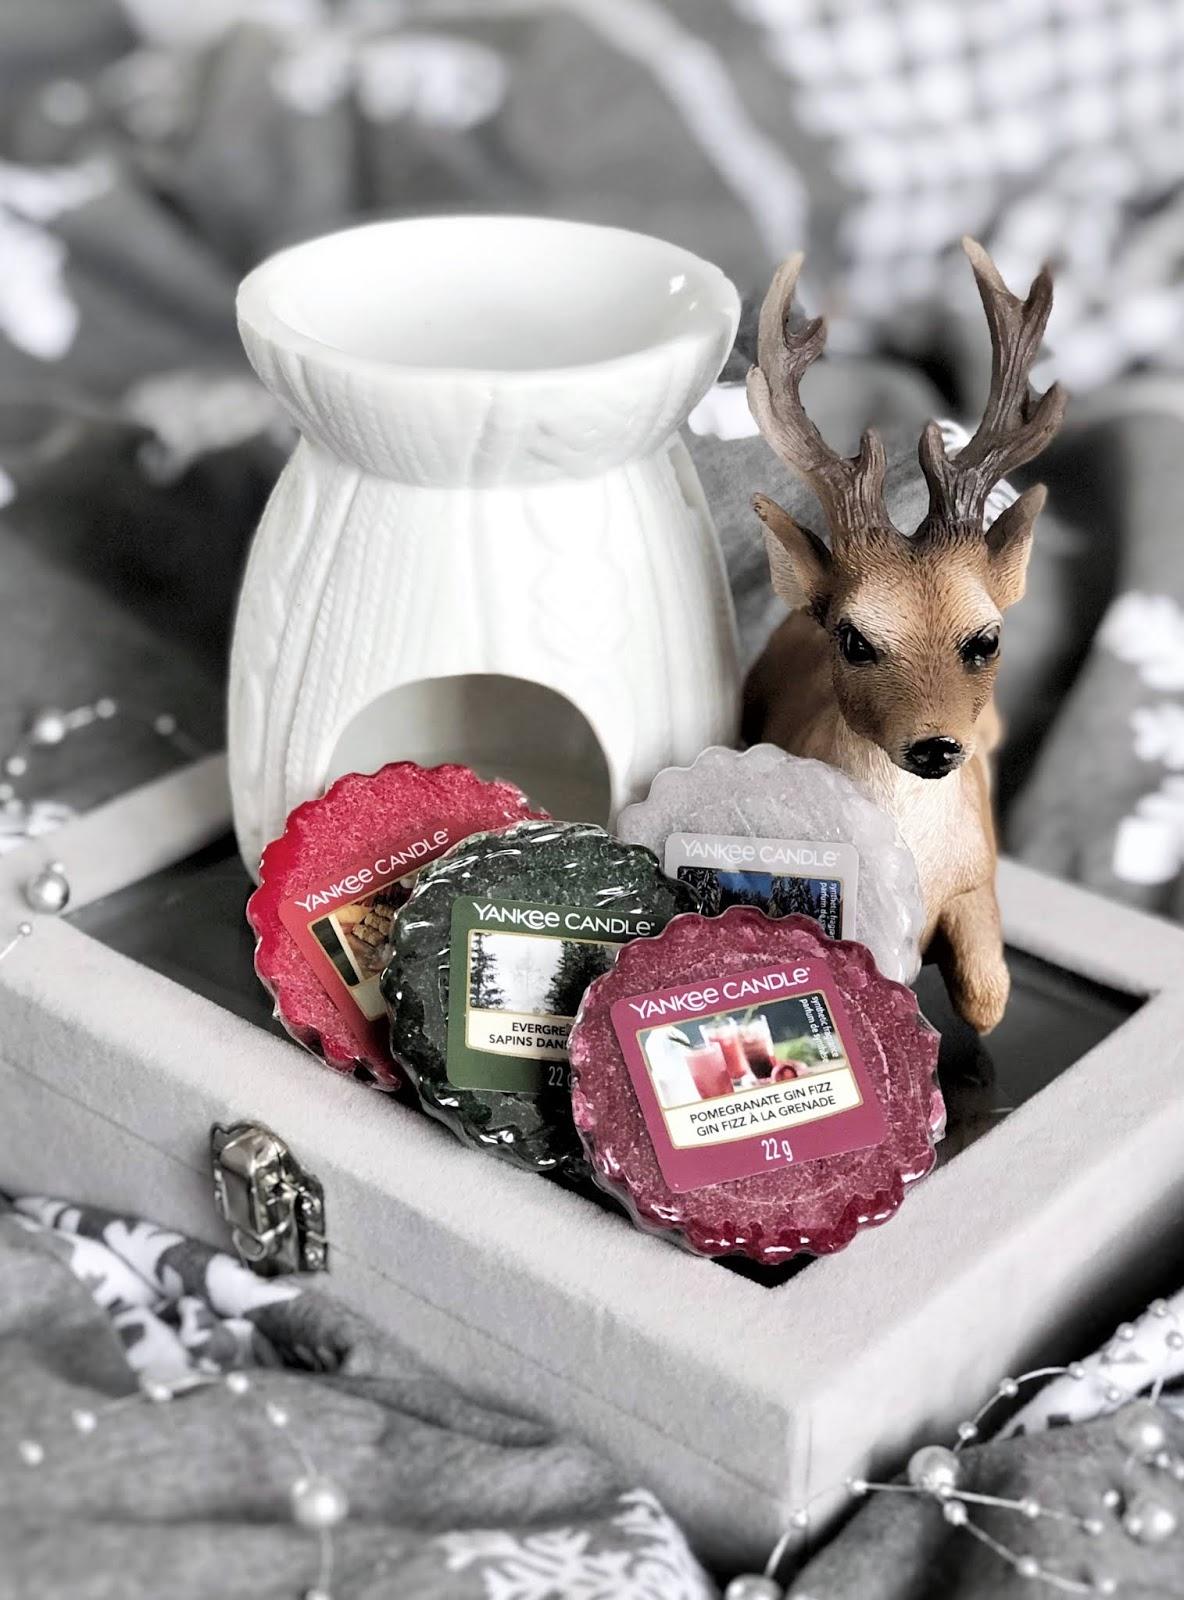 Alpine Christmas - zapachy Yankee Candle na Q4 2019